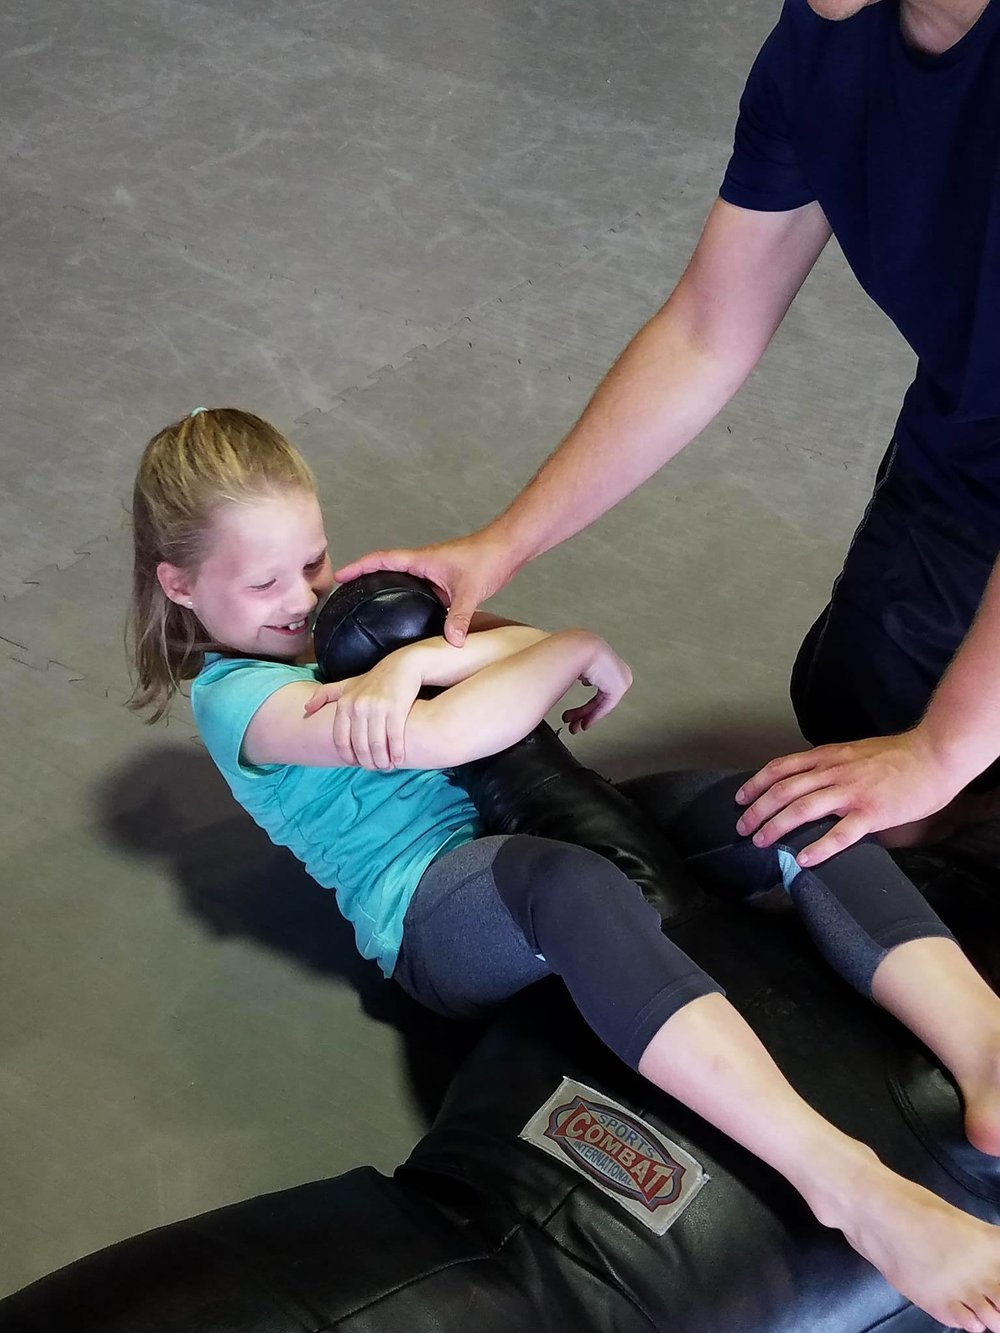 Self-Defense - Your child will learn awesome self-defense skills through multiple lens; one of those lenses will be grappling!